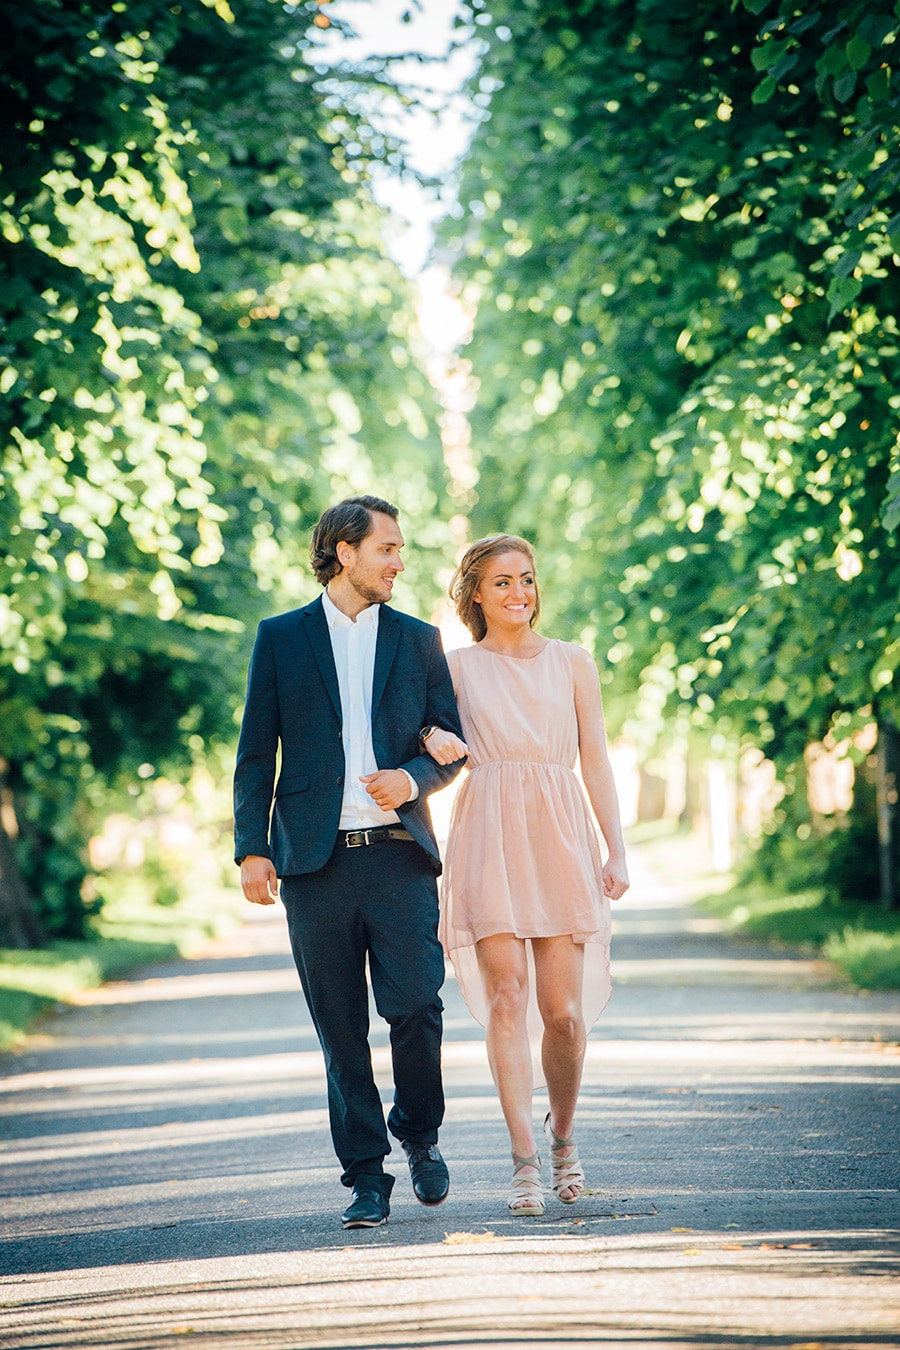 Couple photographed in avenue with trees. Pre wedding beloved session.